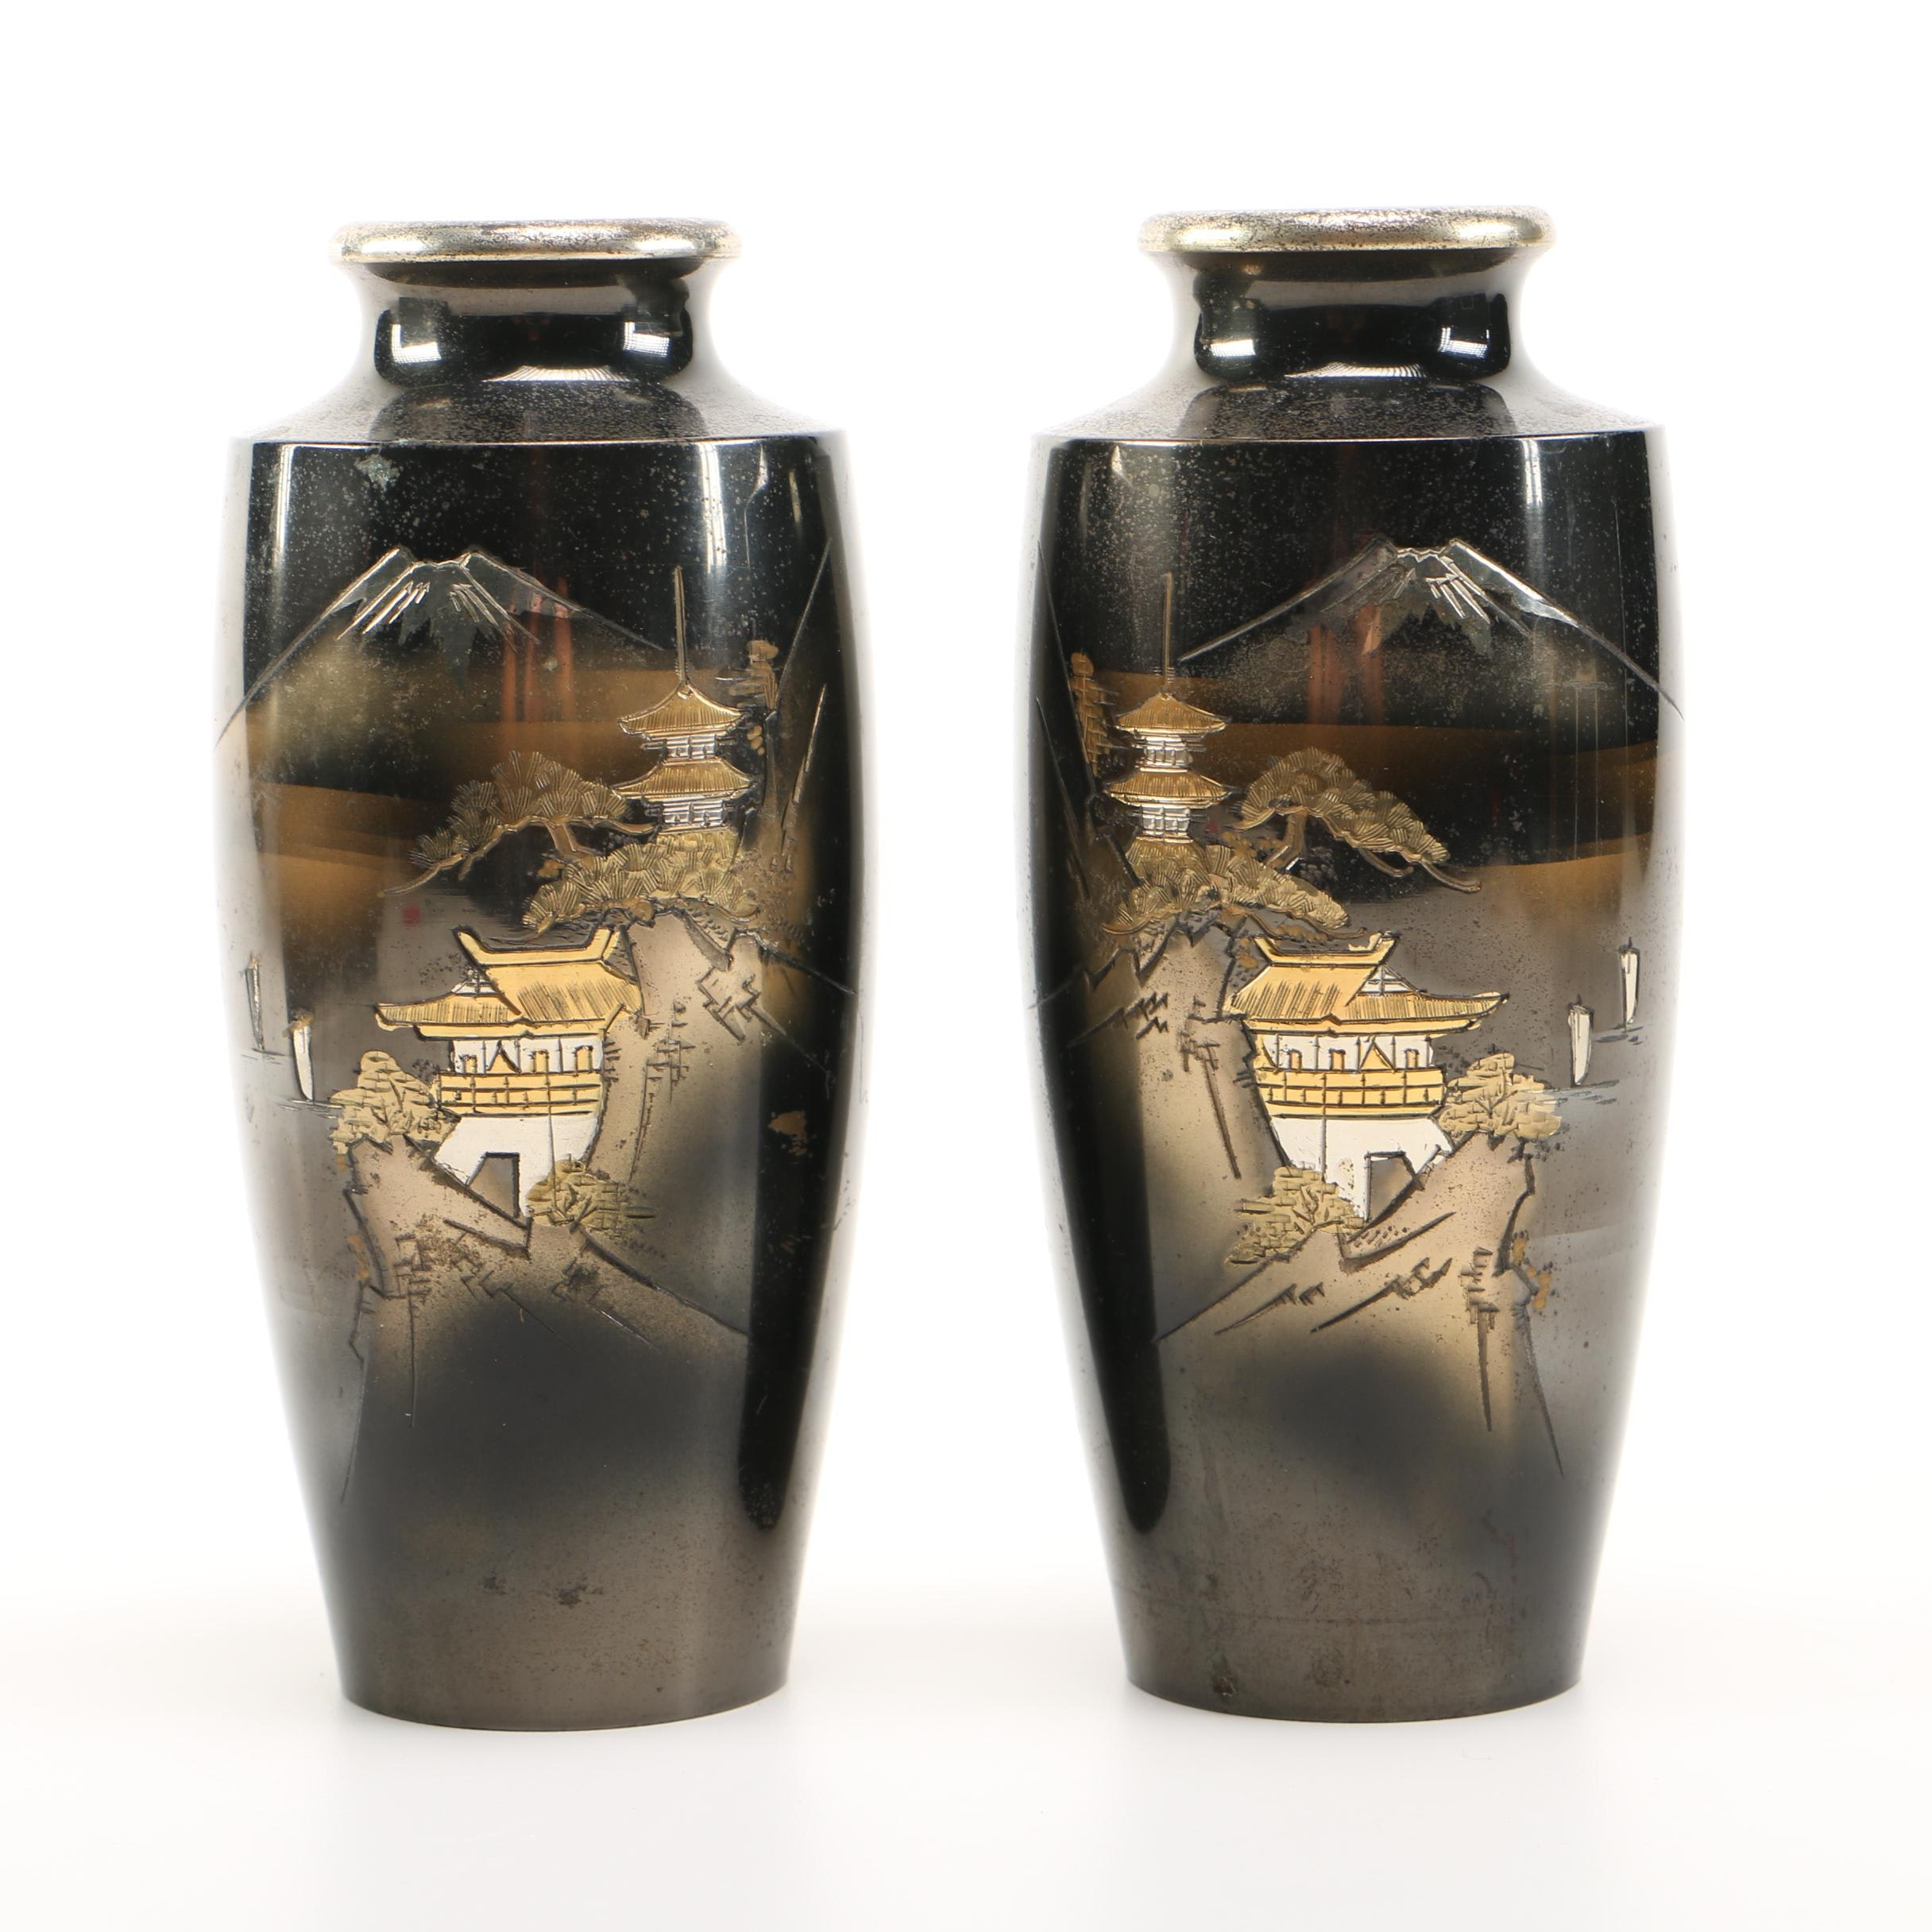 Japanese Themed Etched Metal Vases